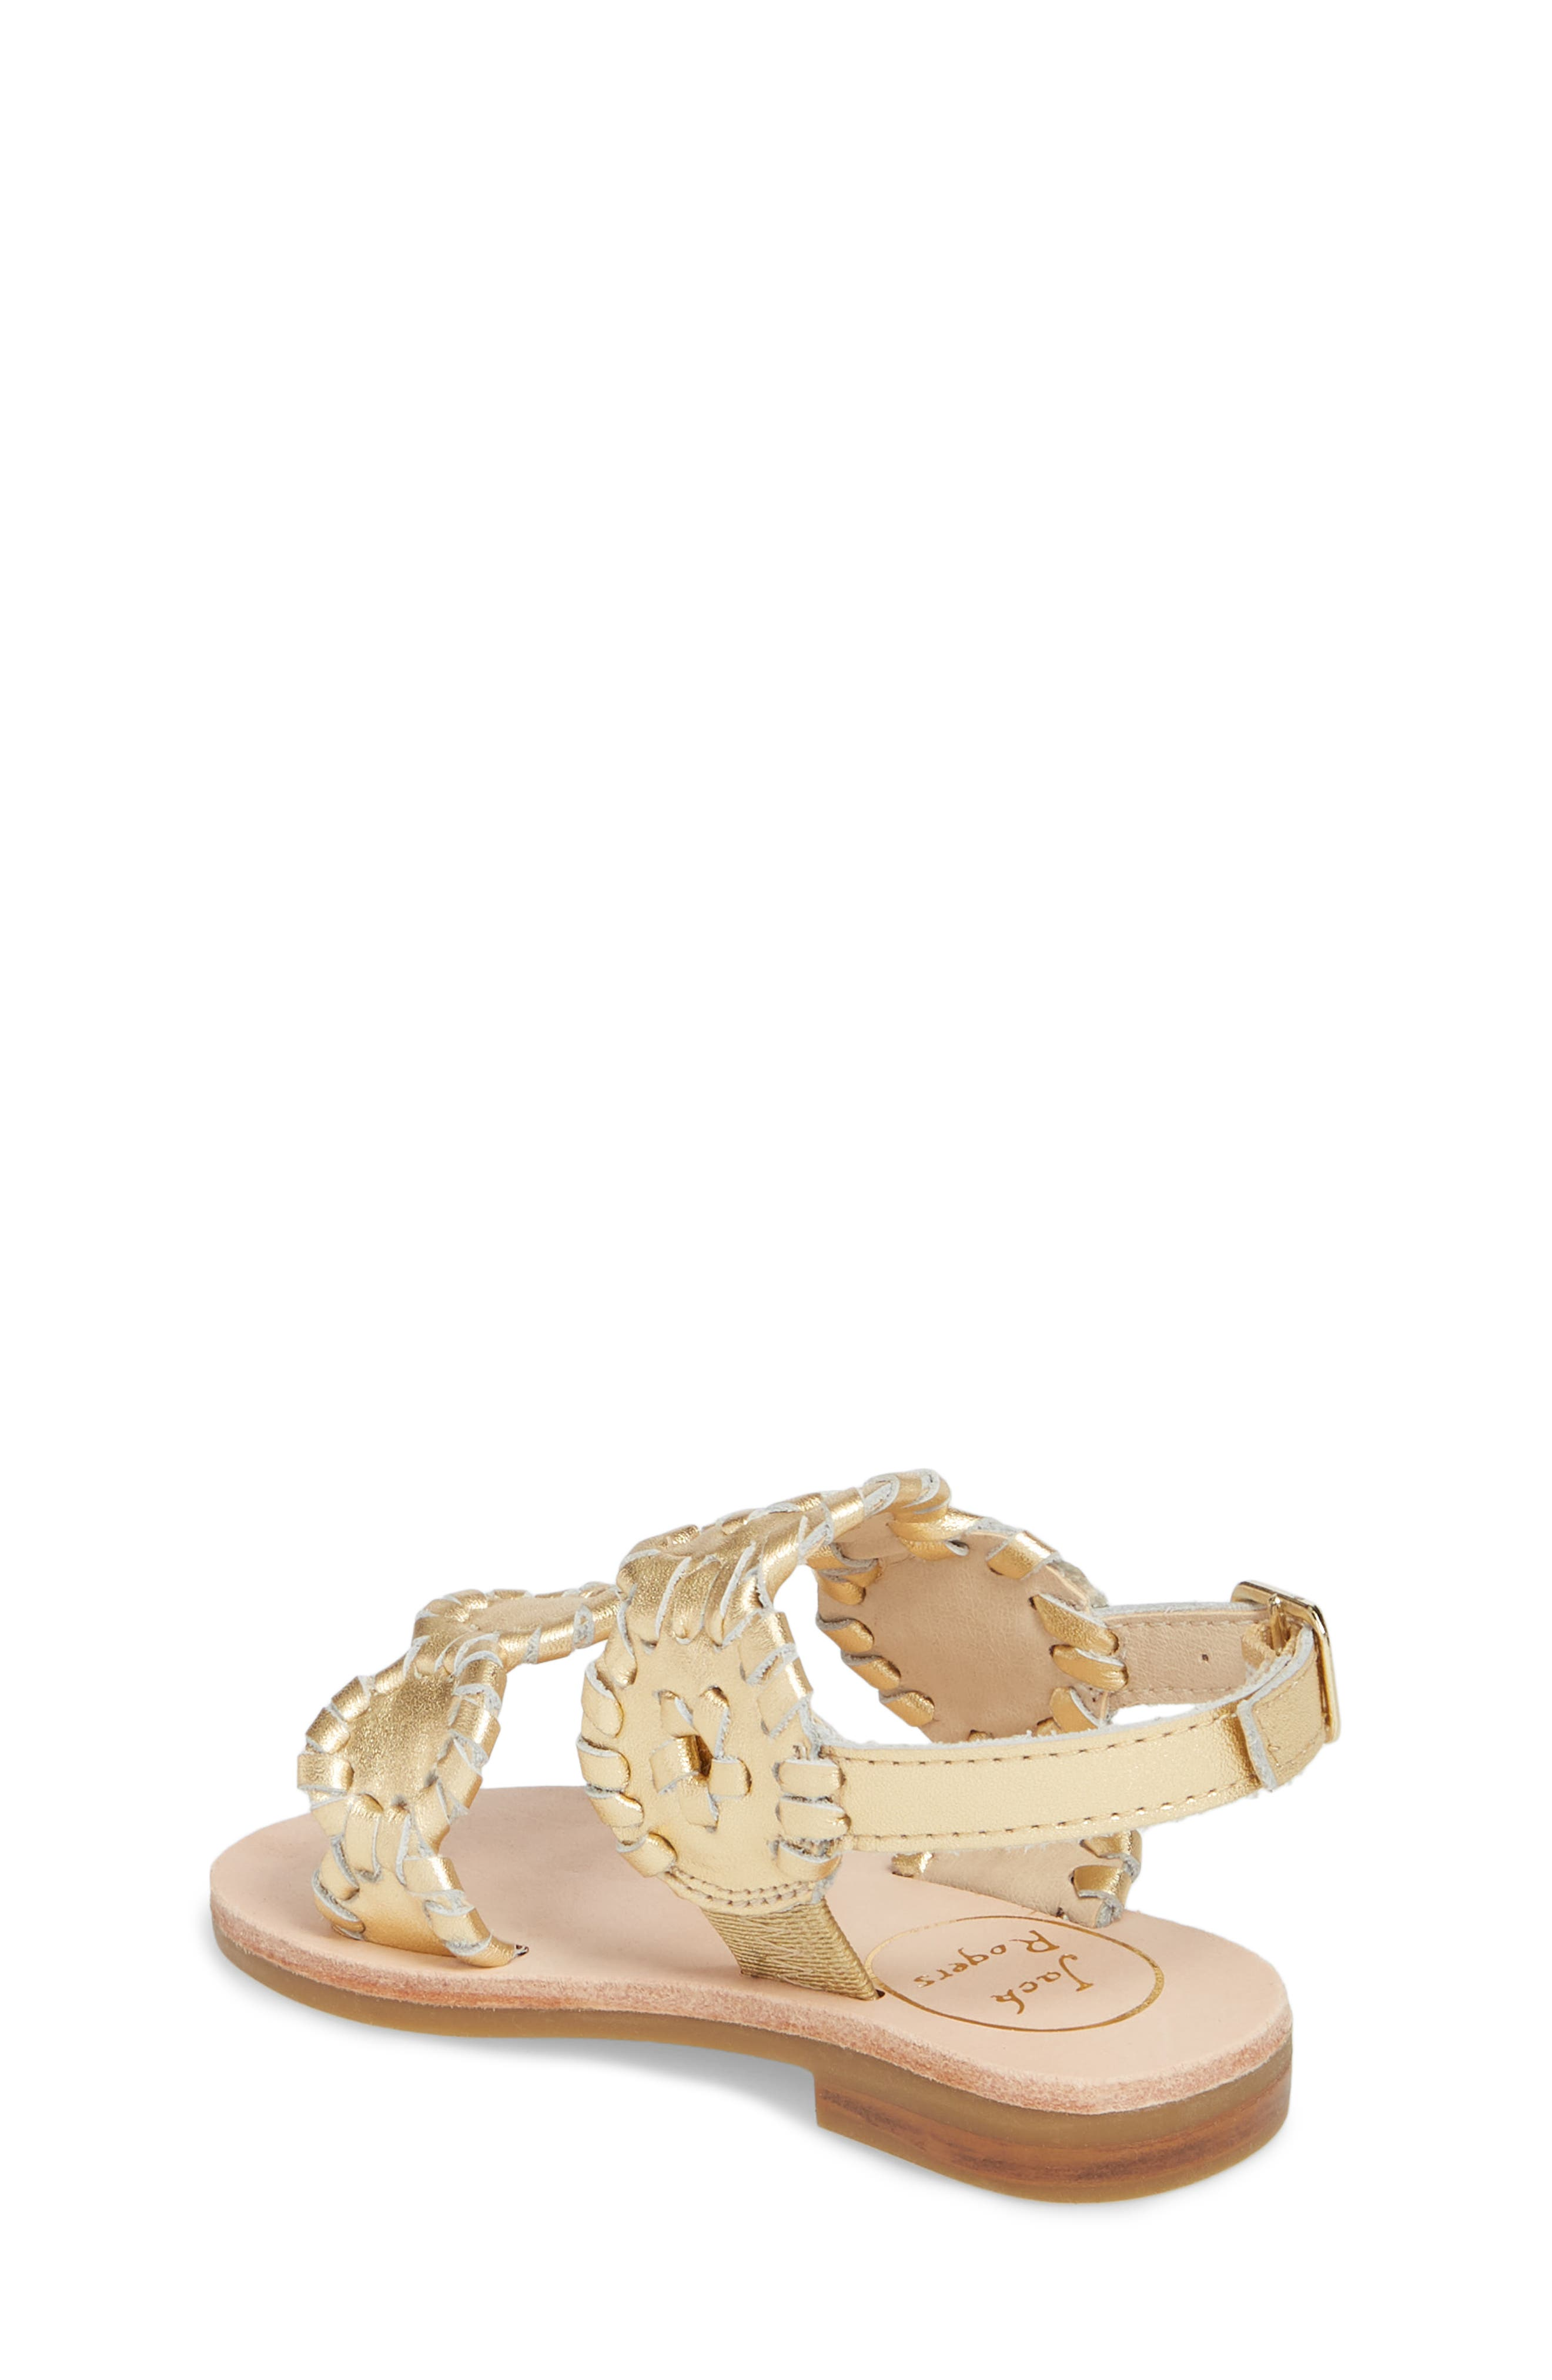 Little Miss Lauren Sandal,                             Alternate thumbnail 2, color,                             GOLD LEATHER